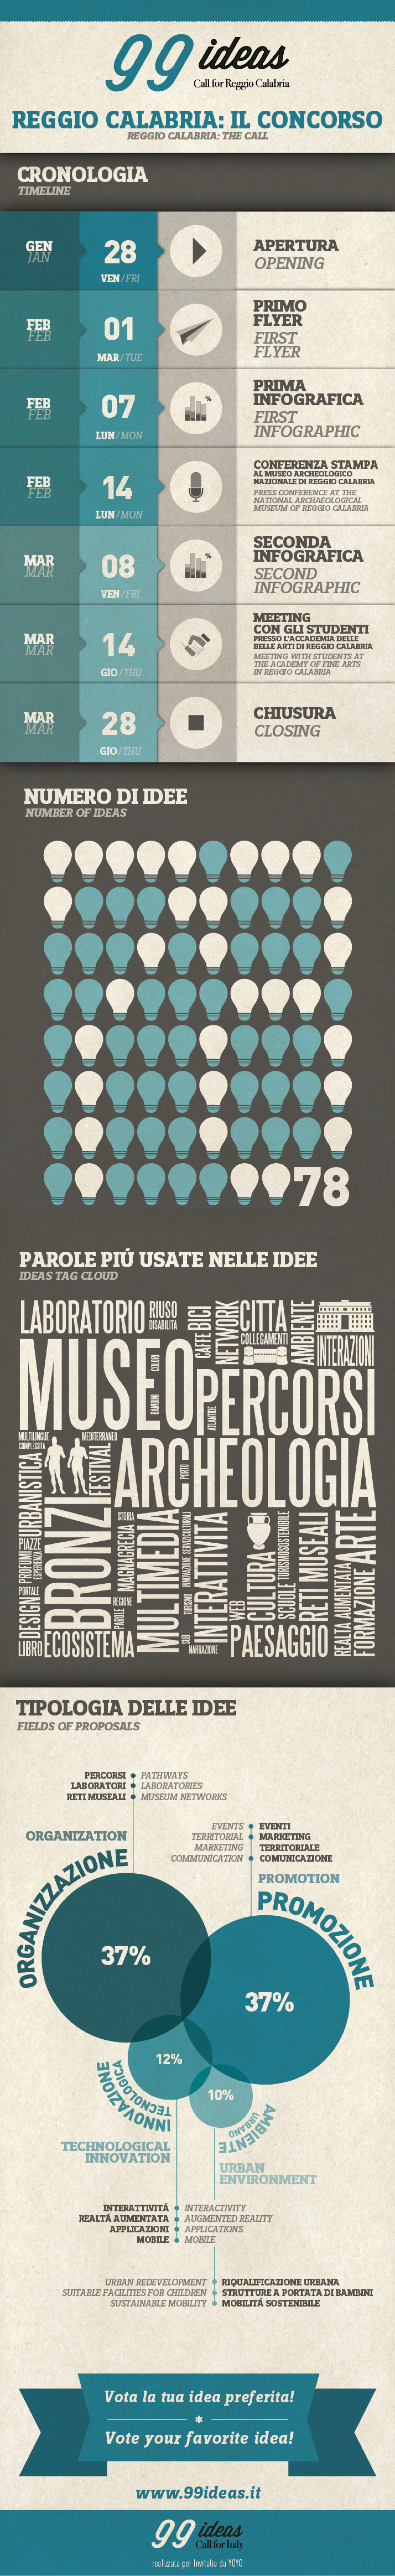 99ideas infografica  Infographic